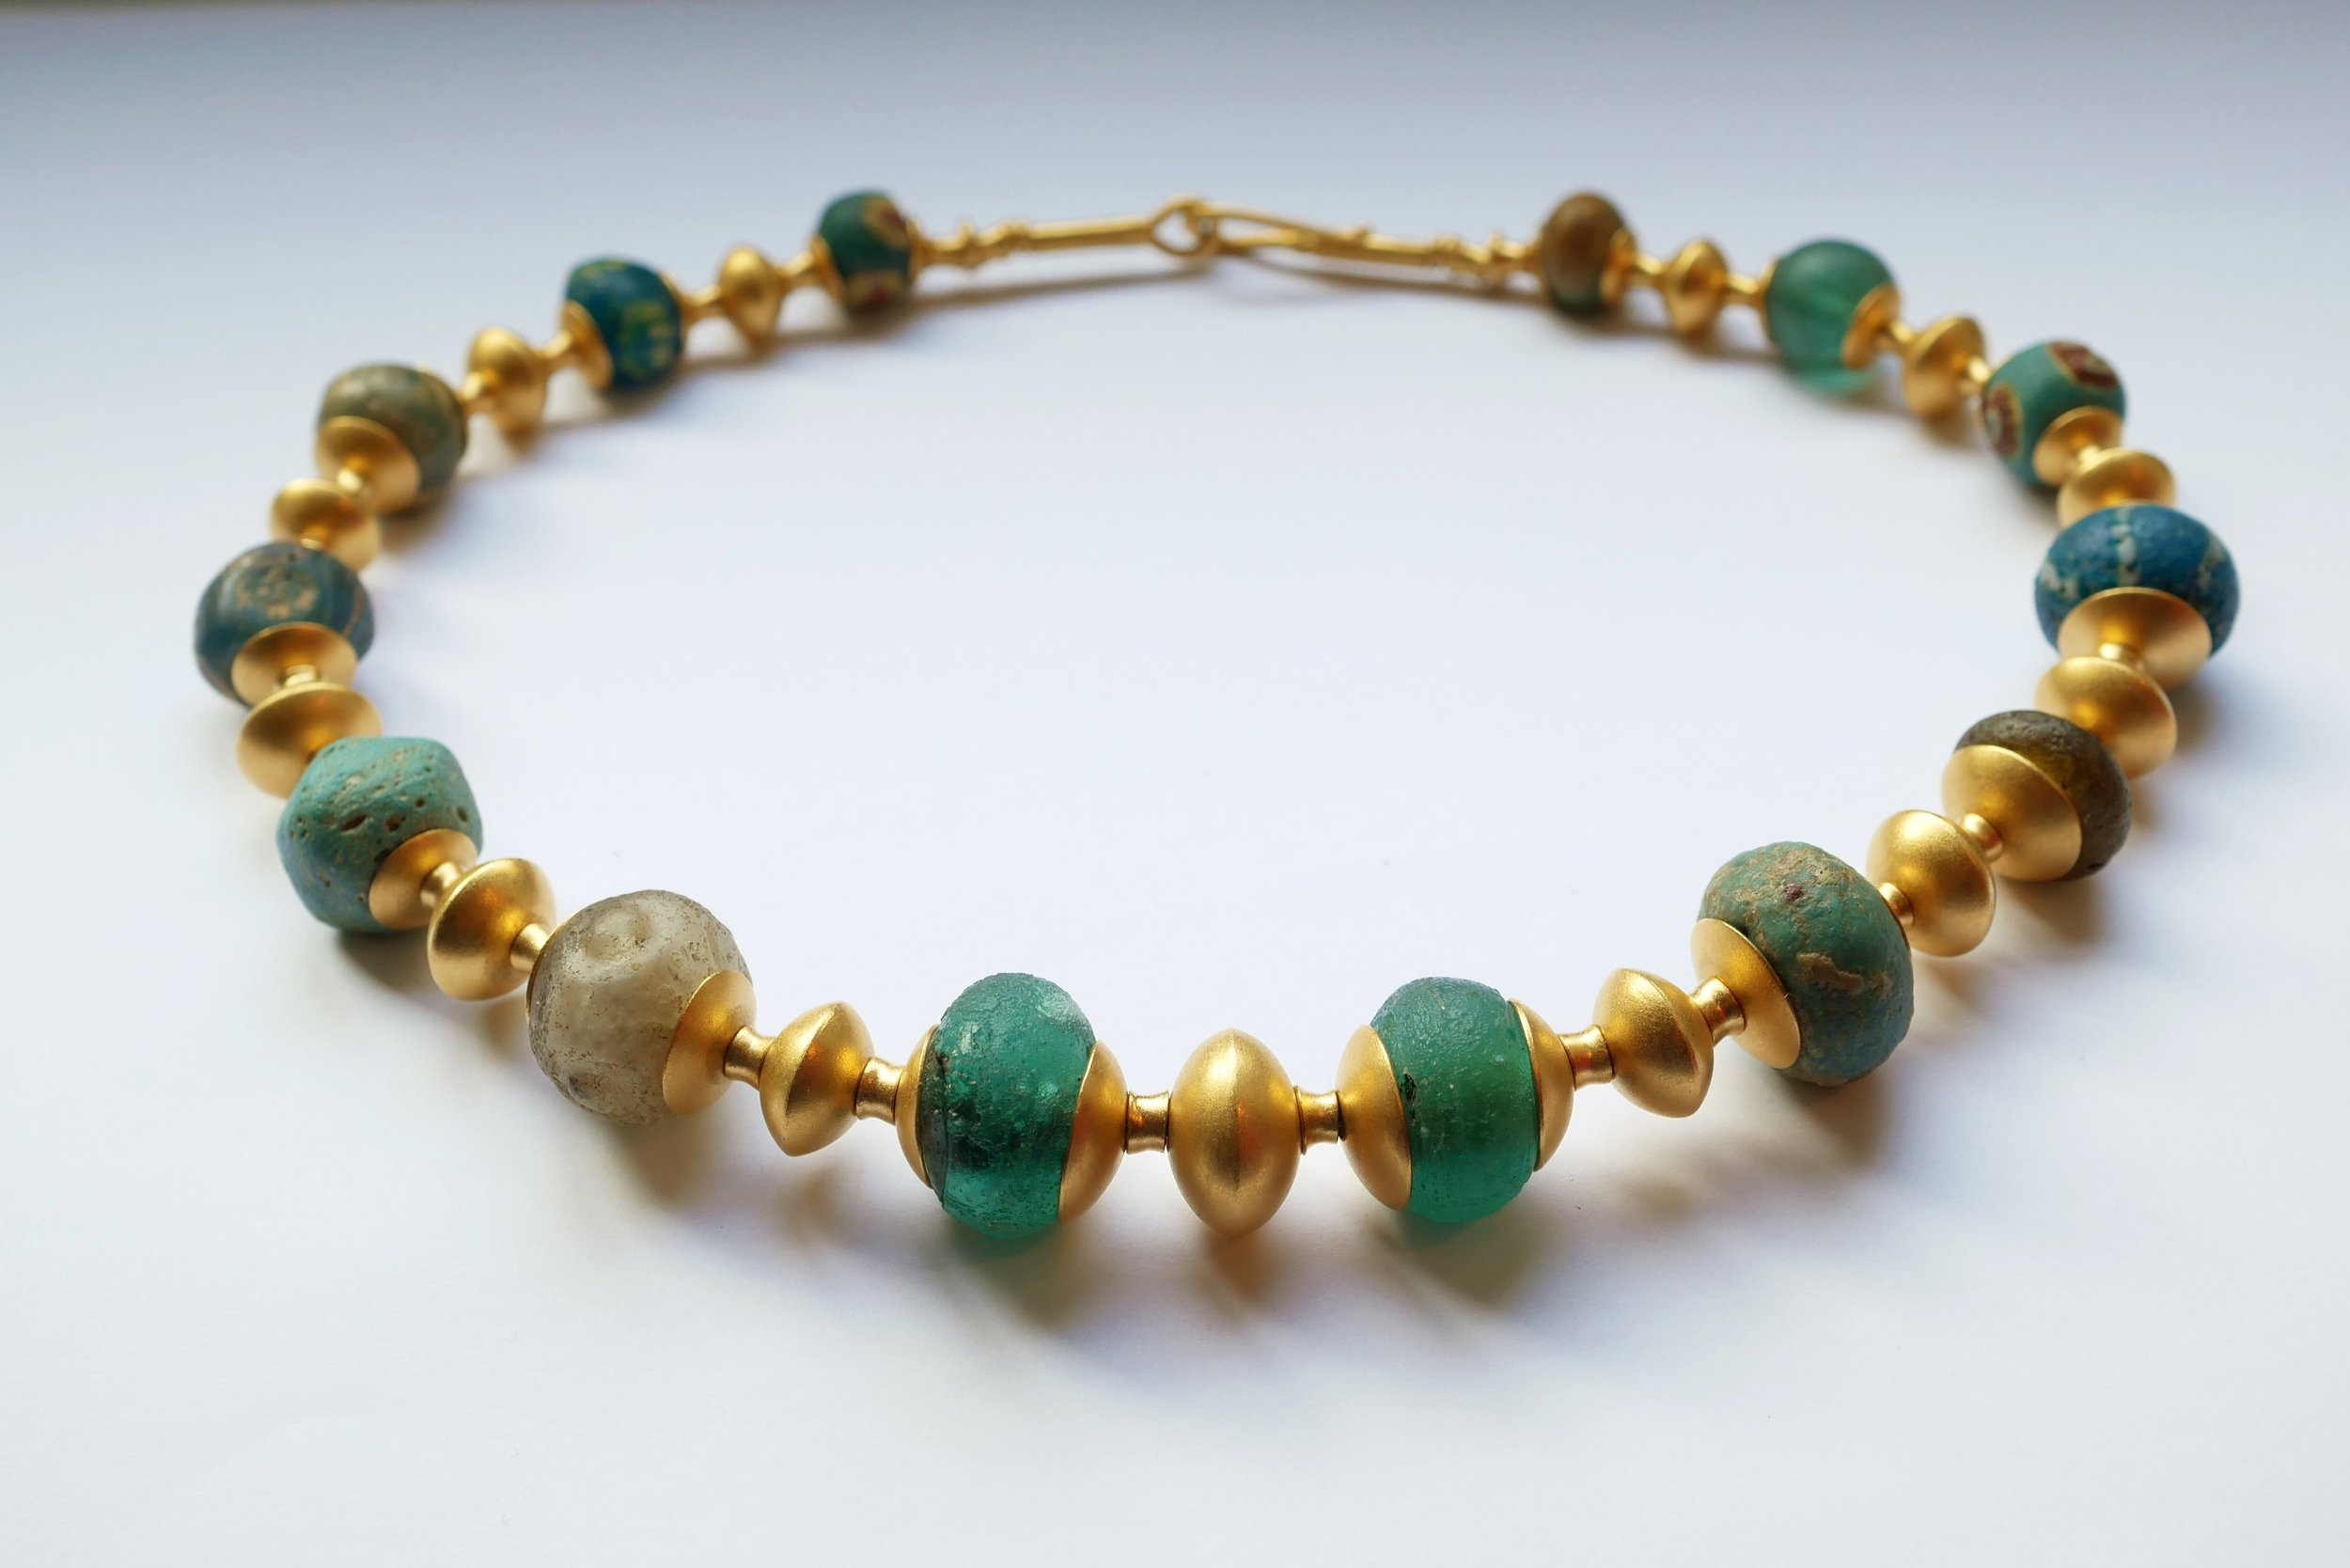 necklace_ancientglassbeads.jpg